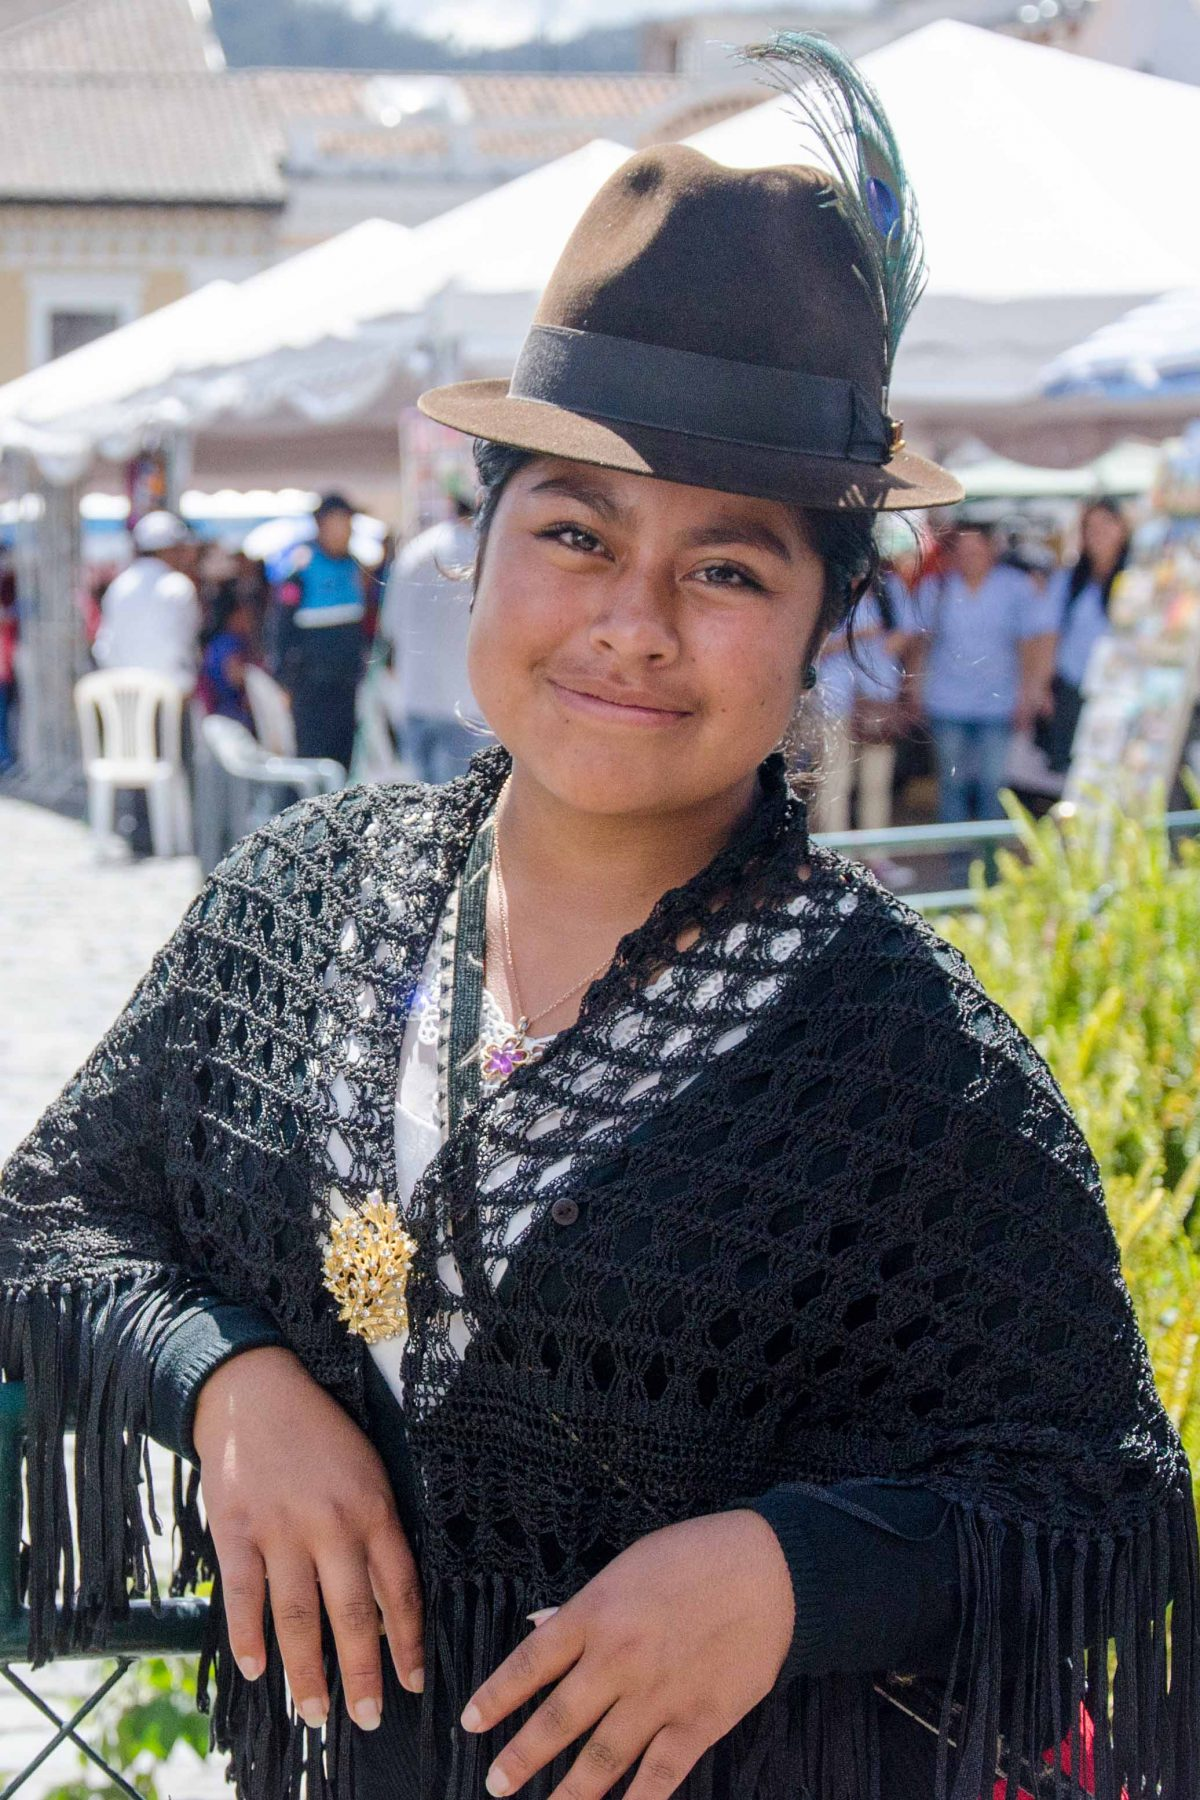 Vanessa is a vendor who sells shawls in the Historic Center of Quito, Ecuador